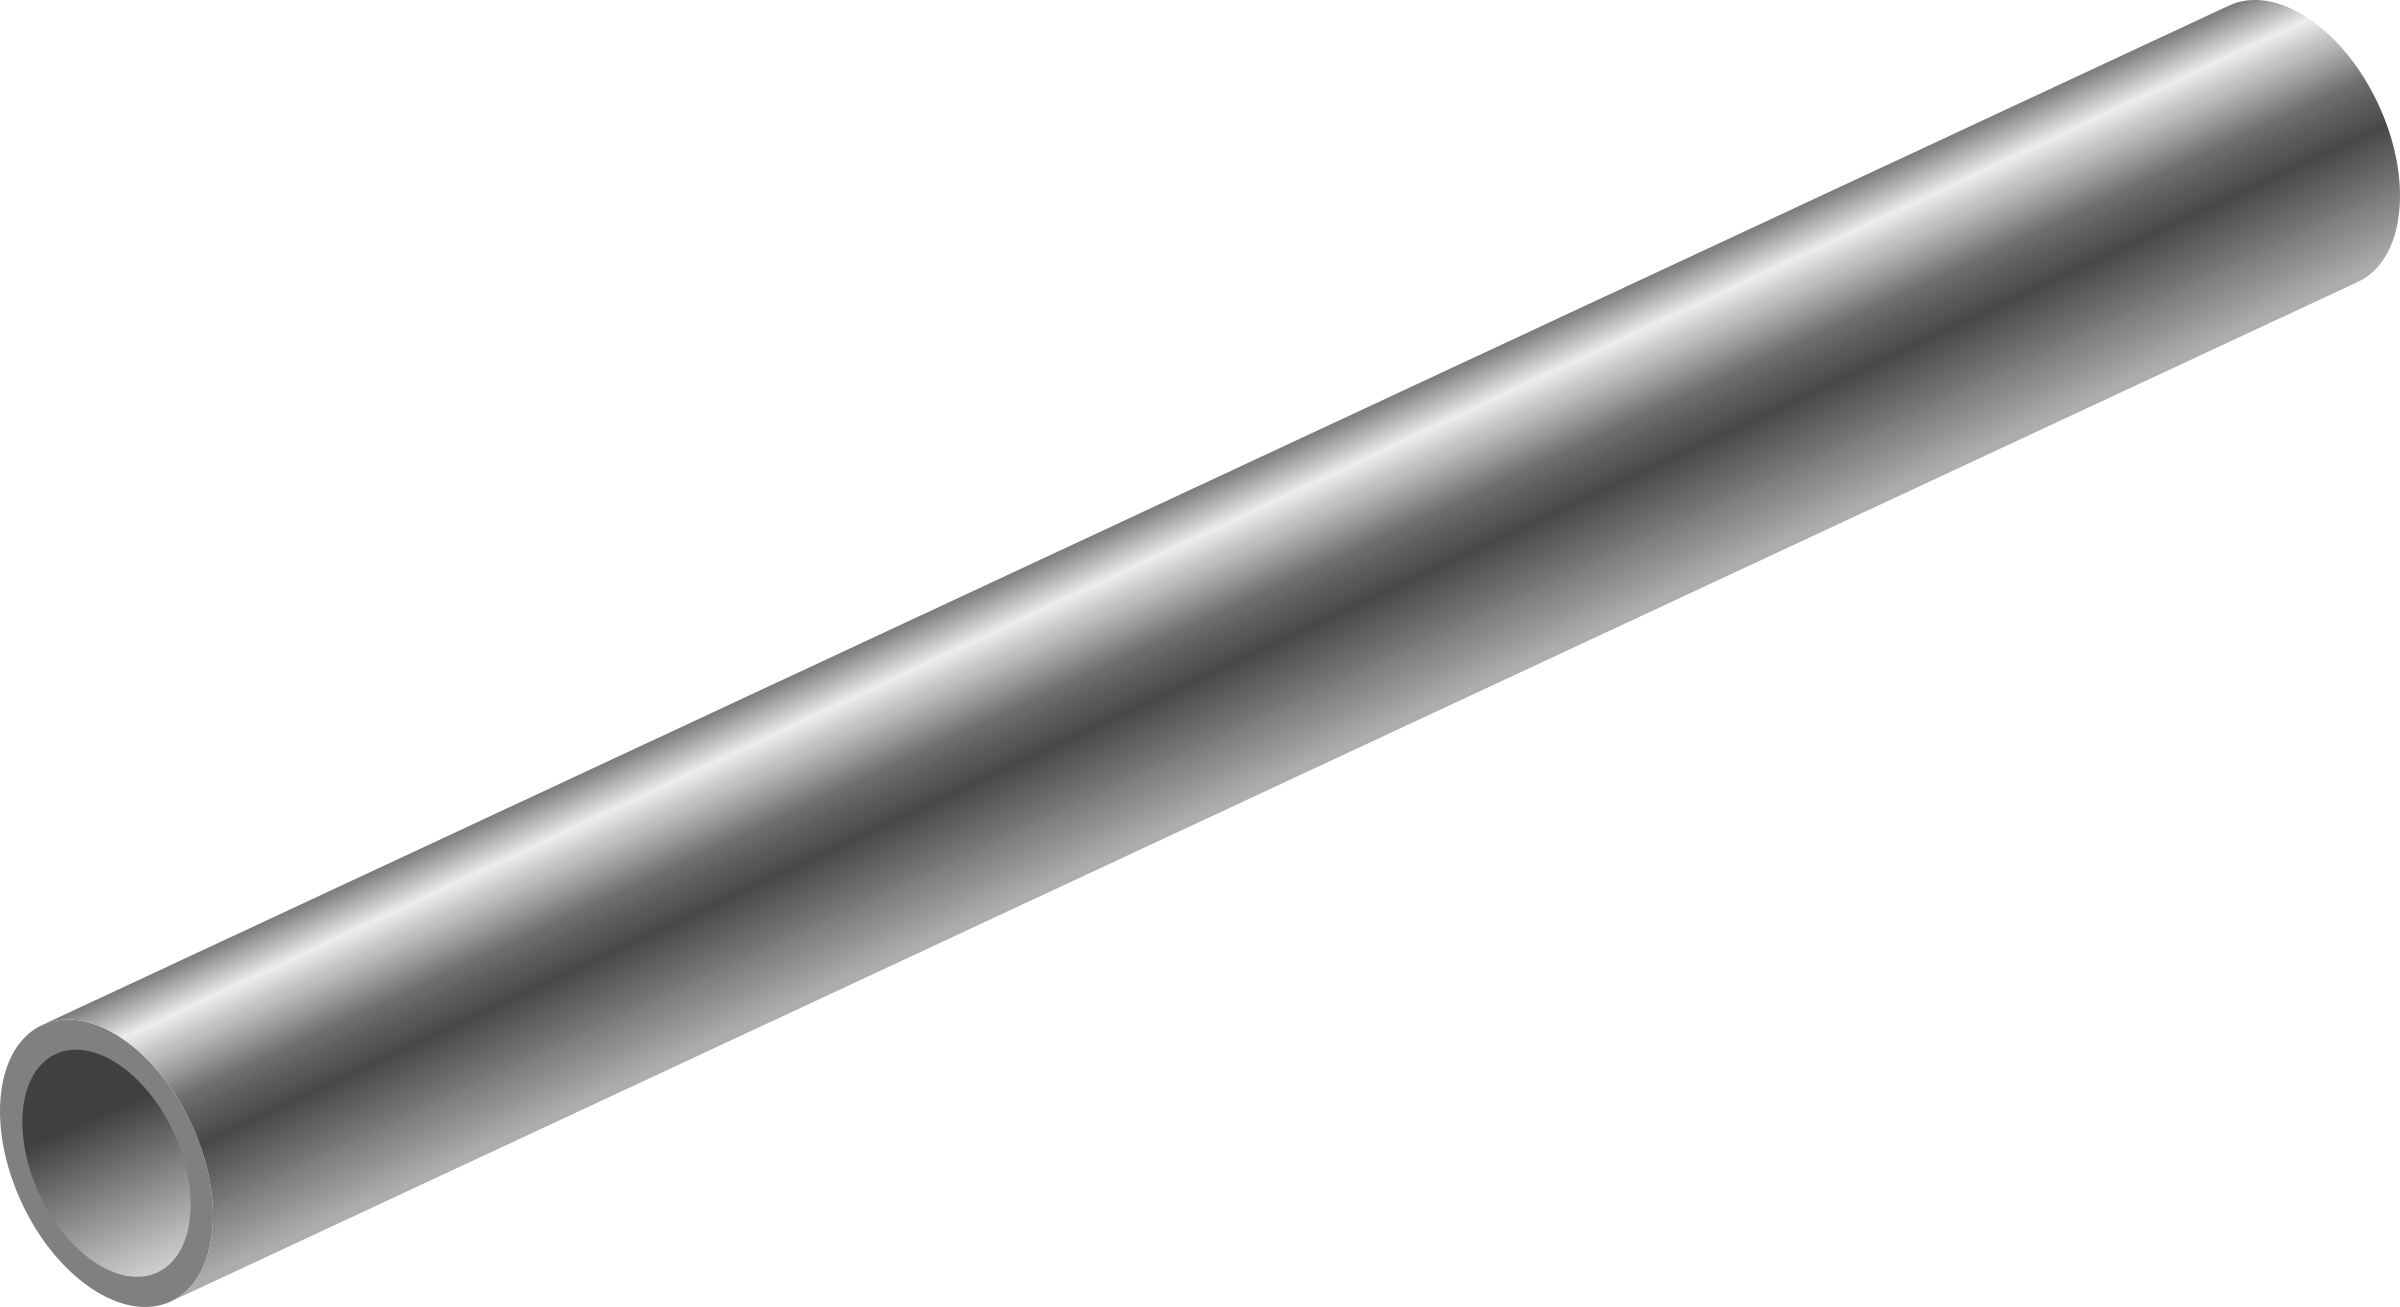 Pipe png. Black and white transparent